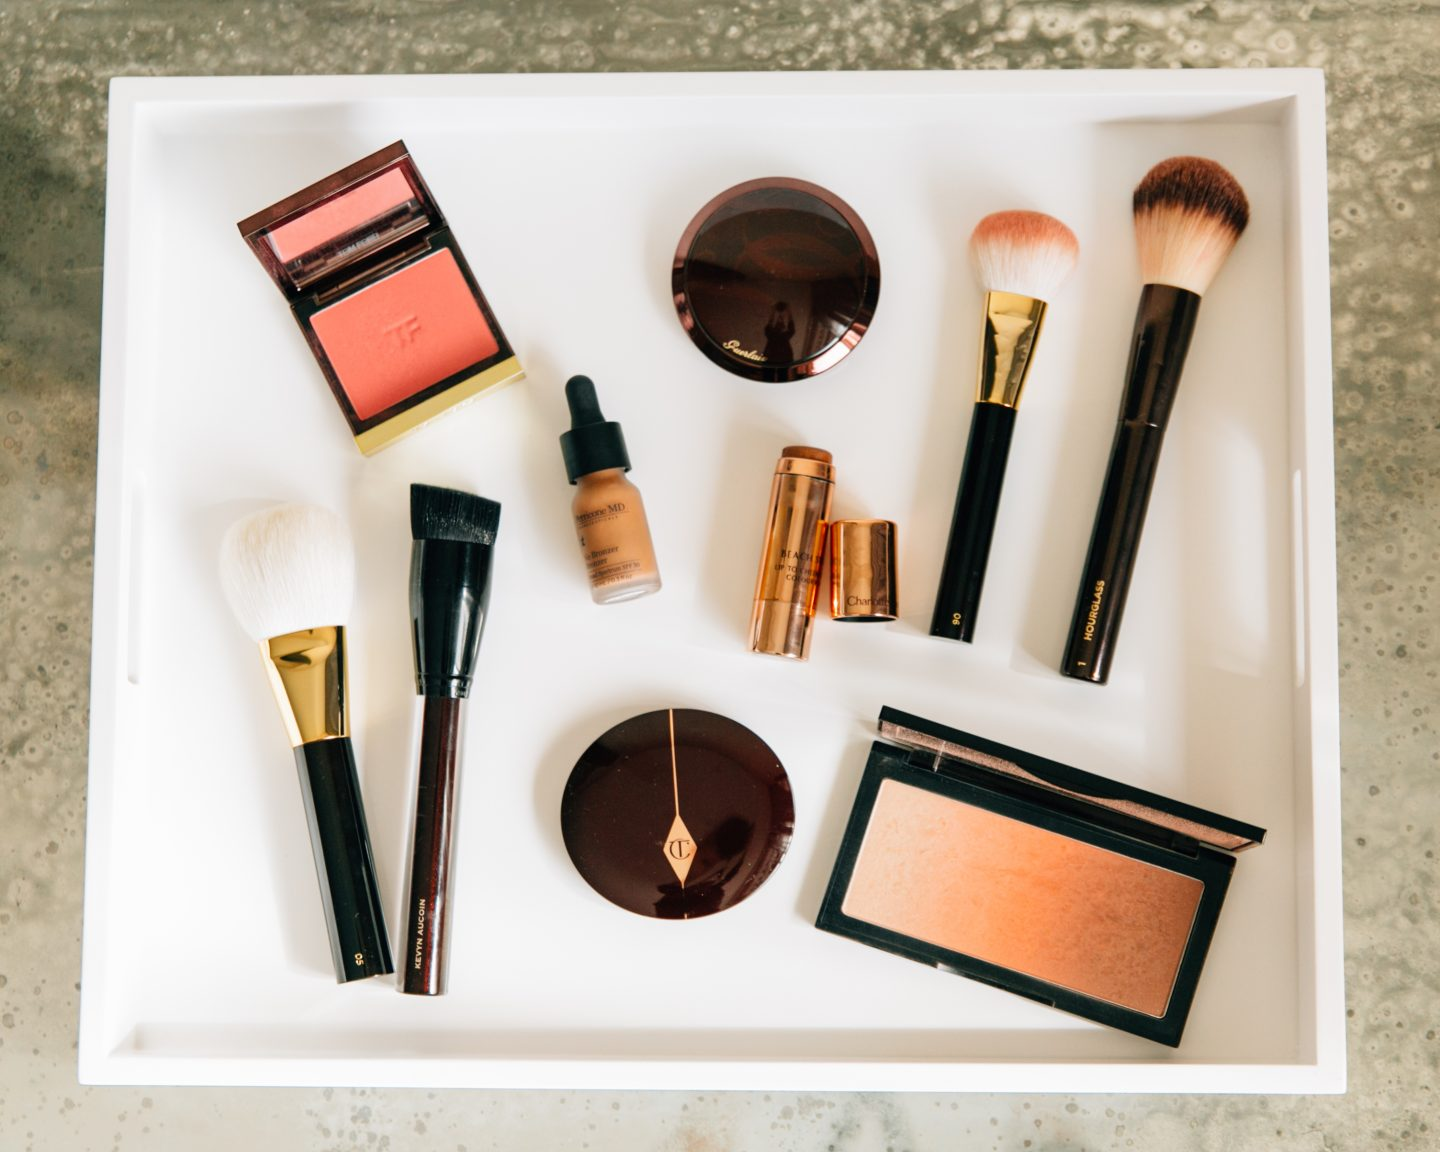 Brushes, Blushes and Bronzer